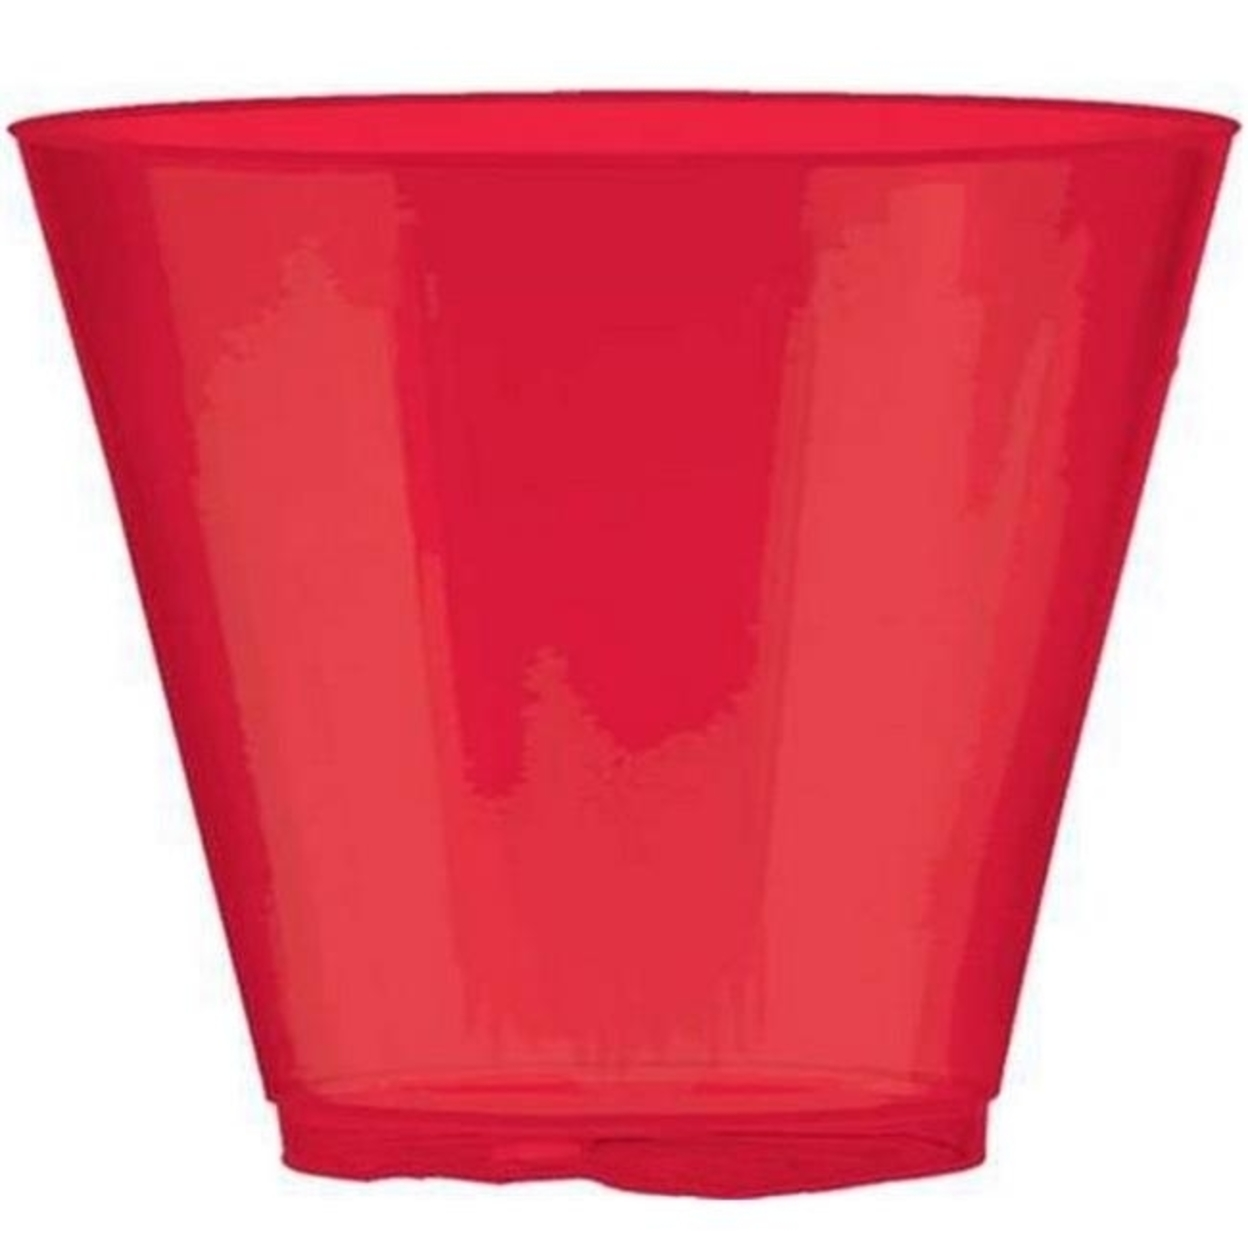 Amscan 350366.40 Red Plastic Cups - Pack of 648 5a39e90a2a00e45b565983e9